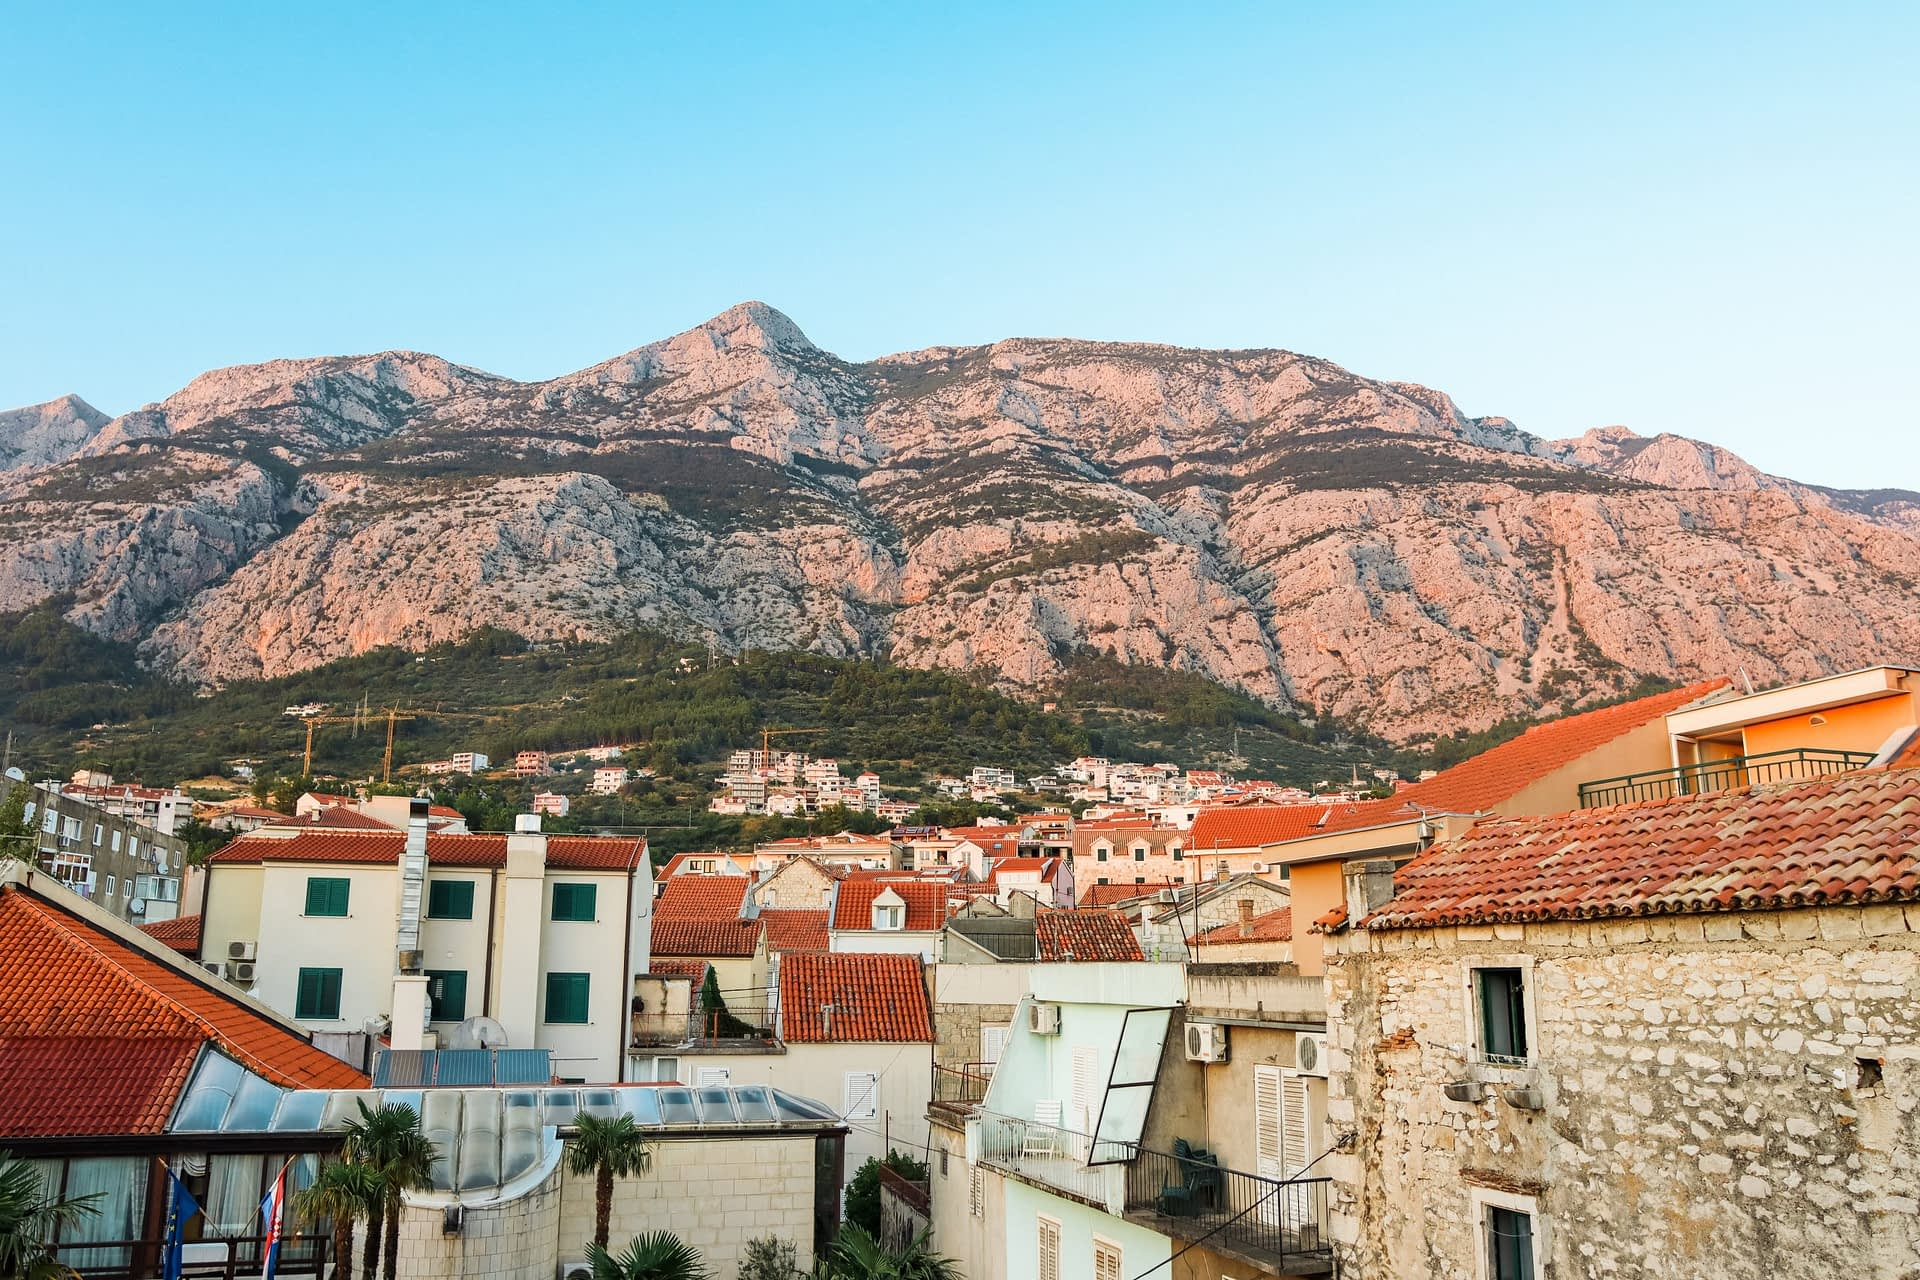 Mountains during sunset with Makarksa old town in the background. Things to see in Makarska